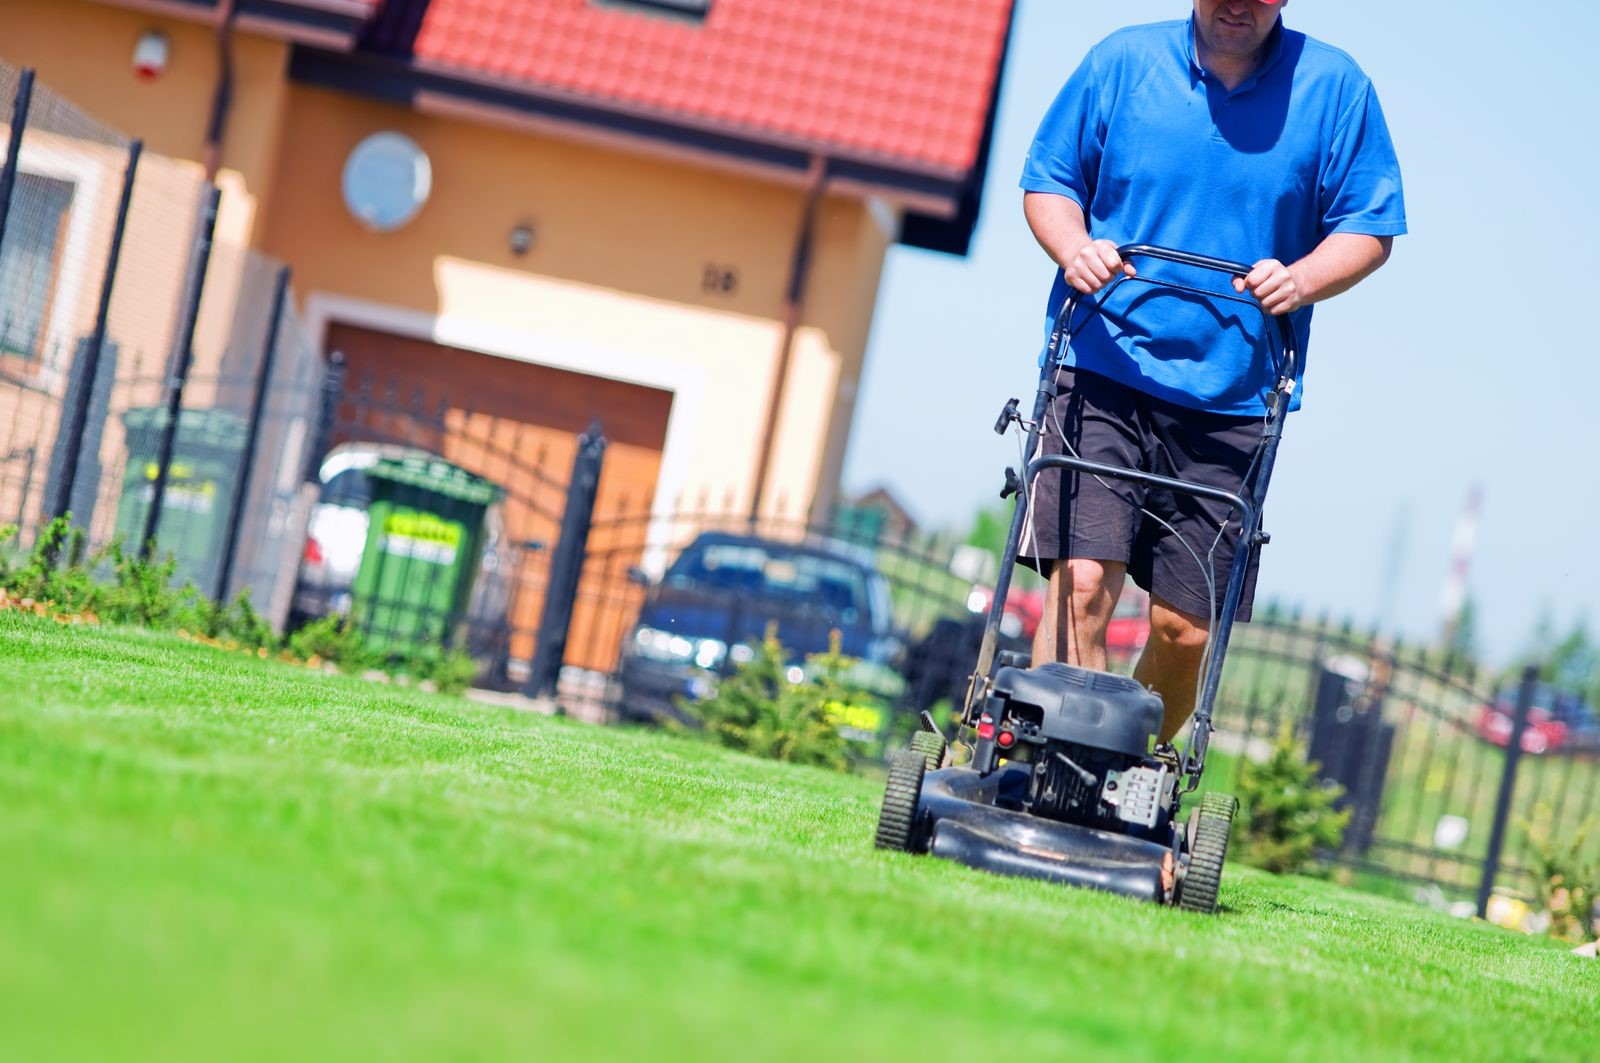 Professional Lawn Care Services Can Properly Maintain Your Landscaping